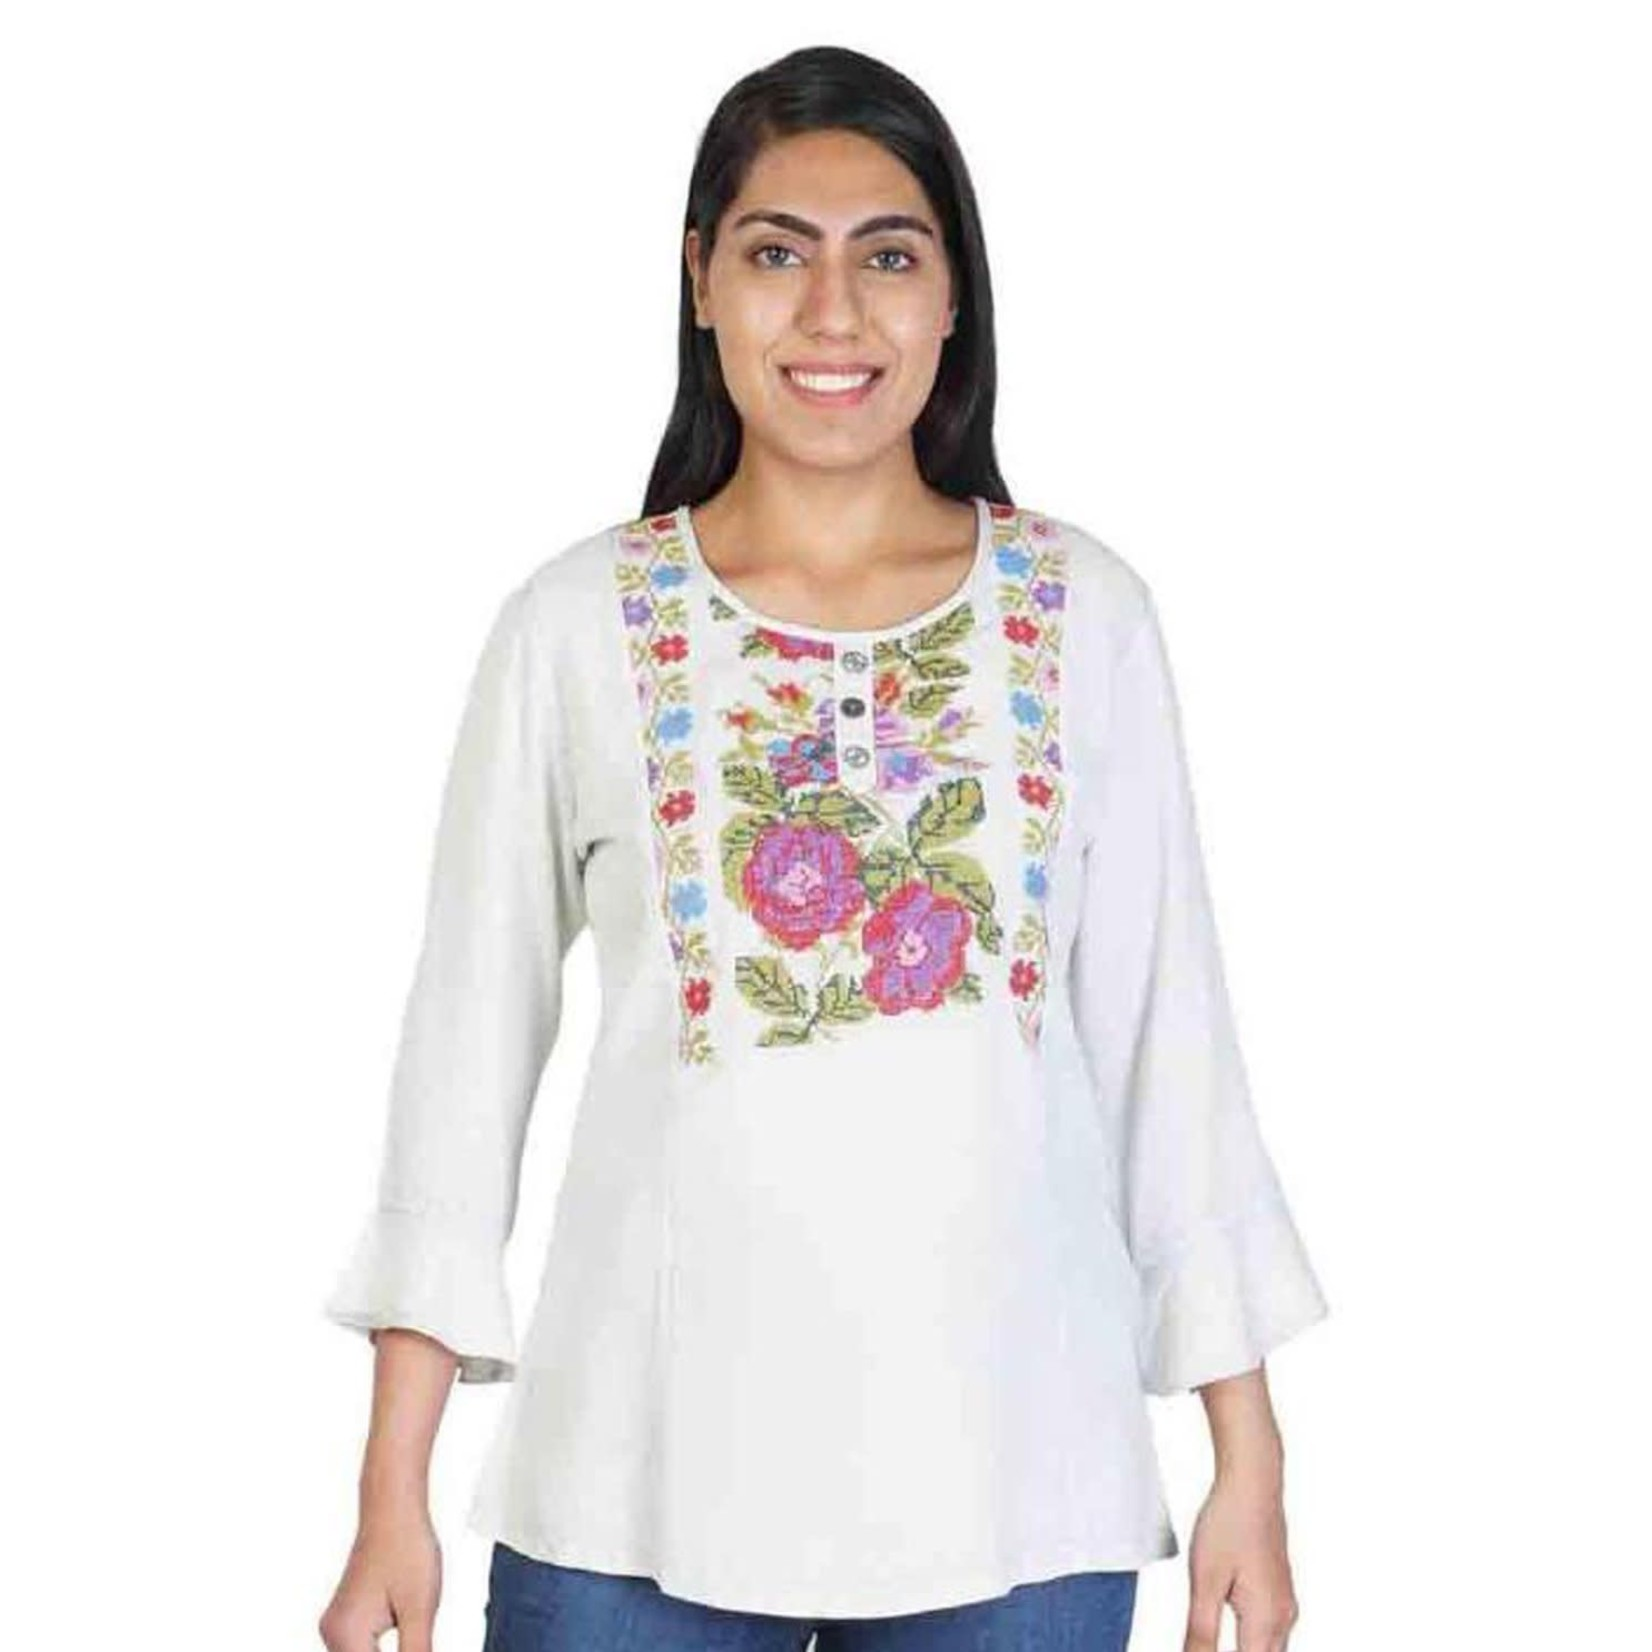 Parsley and Sage Natalie Off-white Top w/ Embroidered Floral Pattern